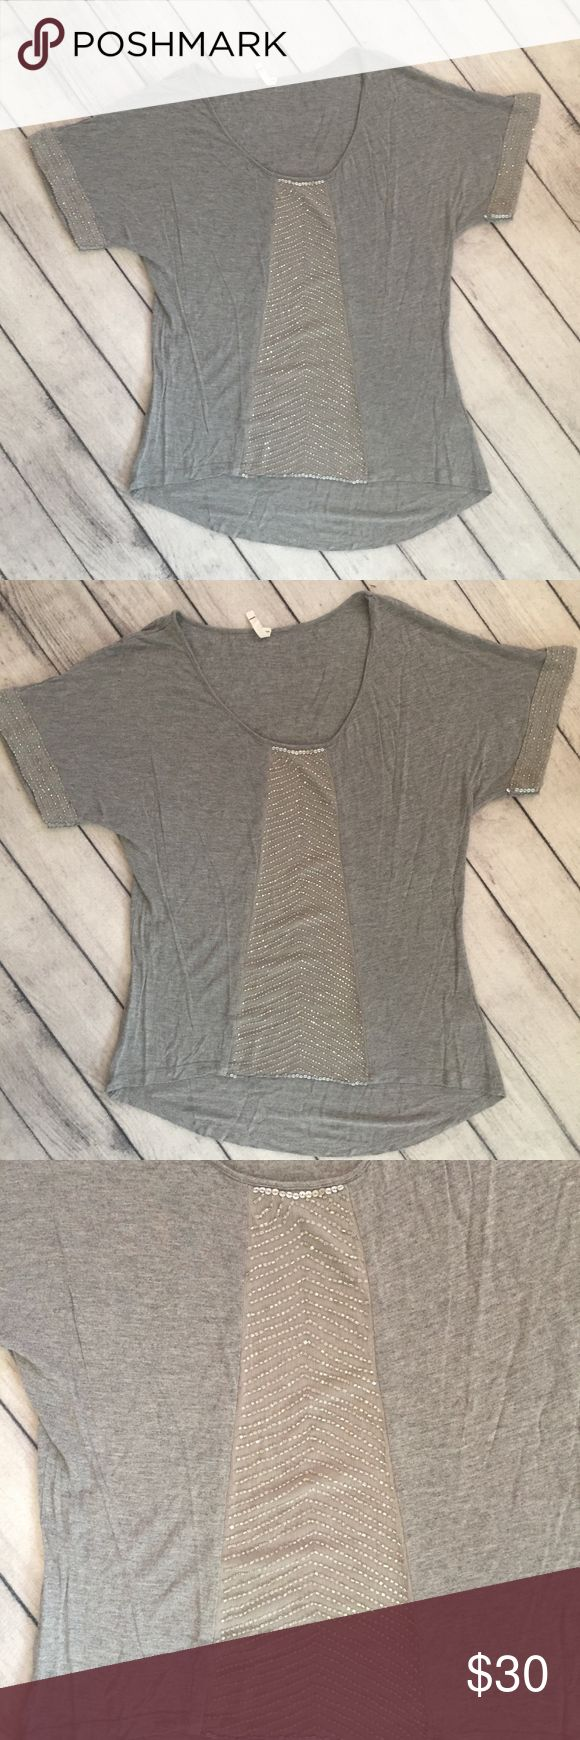 Anthropologie Willow & Clay Women's Knit Top, Sz M Williow & Clay for Anthropologie women's knit top. Size M. Gray with silver sequins.  Excellent condition! Willow & Clay Tops Tees - Short Sleeve